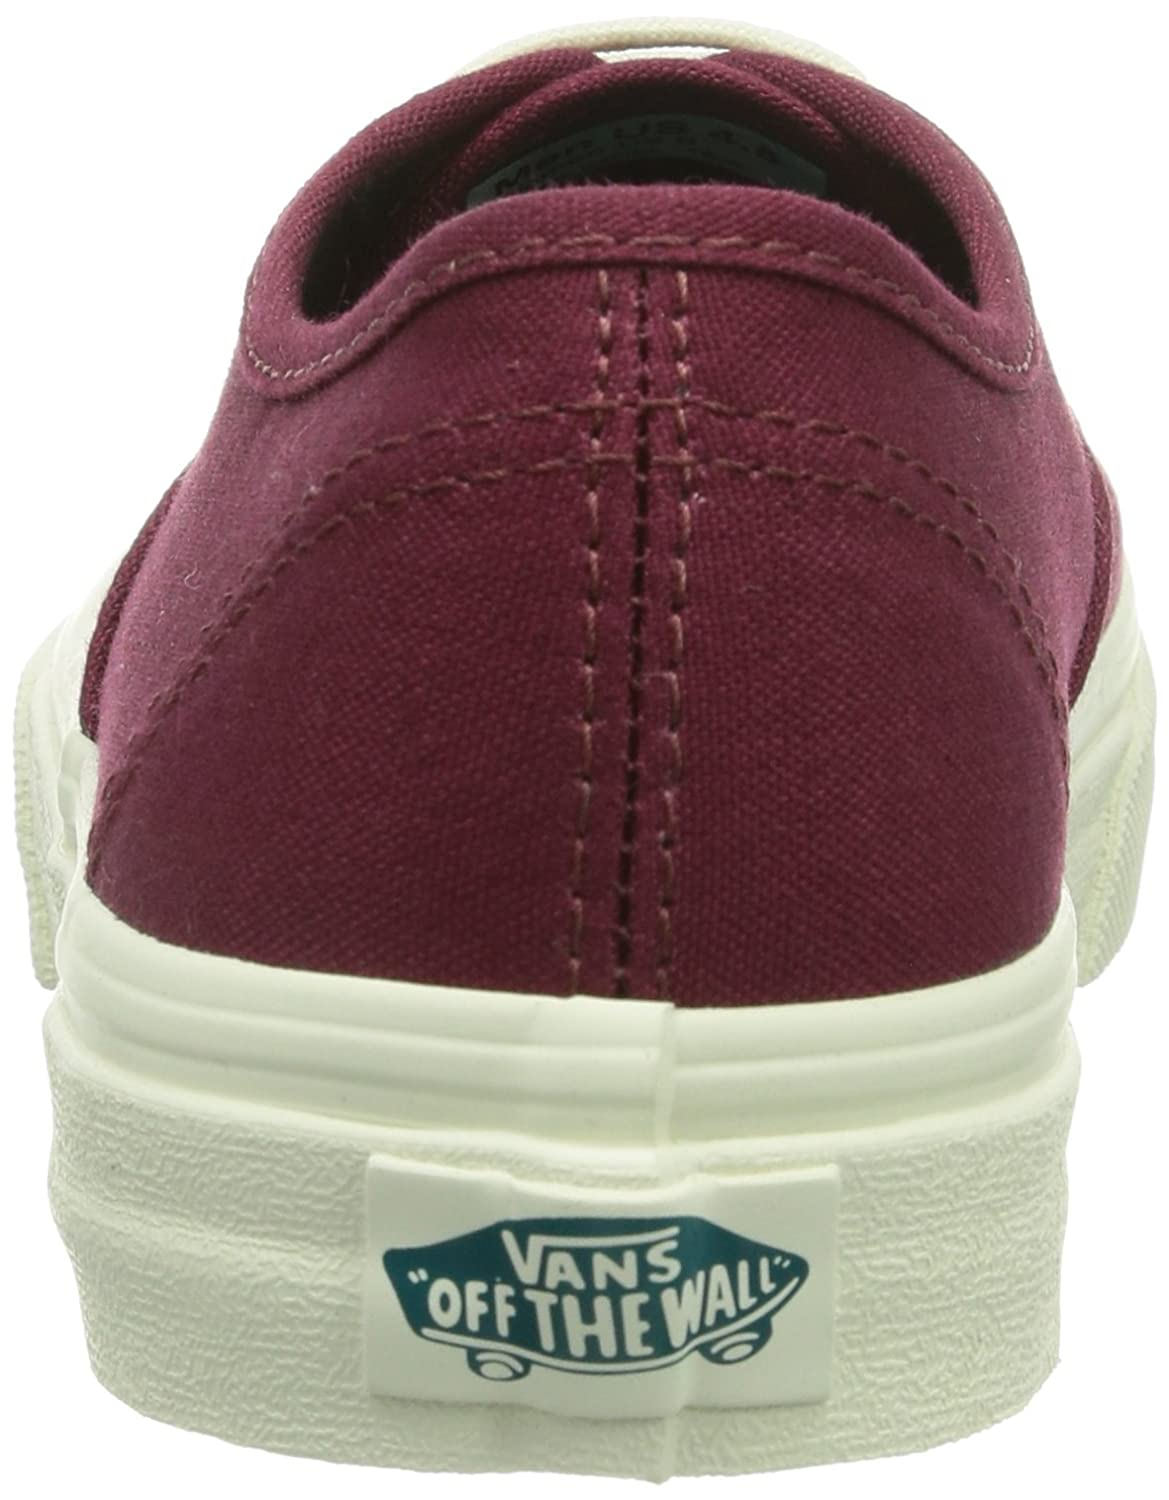 Vans U AUTHENTIC SLIM Unisex-Erwachsene Sneakers / Rot ((Pop) Cordovan/ / Sneakers Dxt) 242984